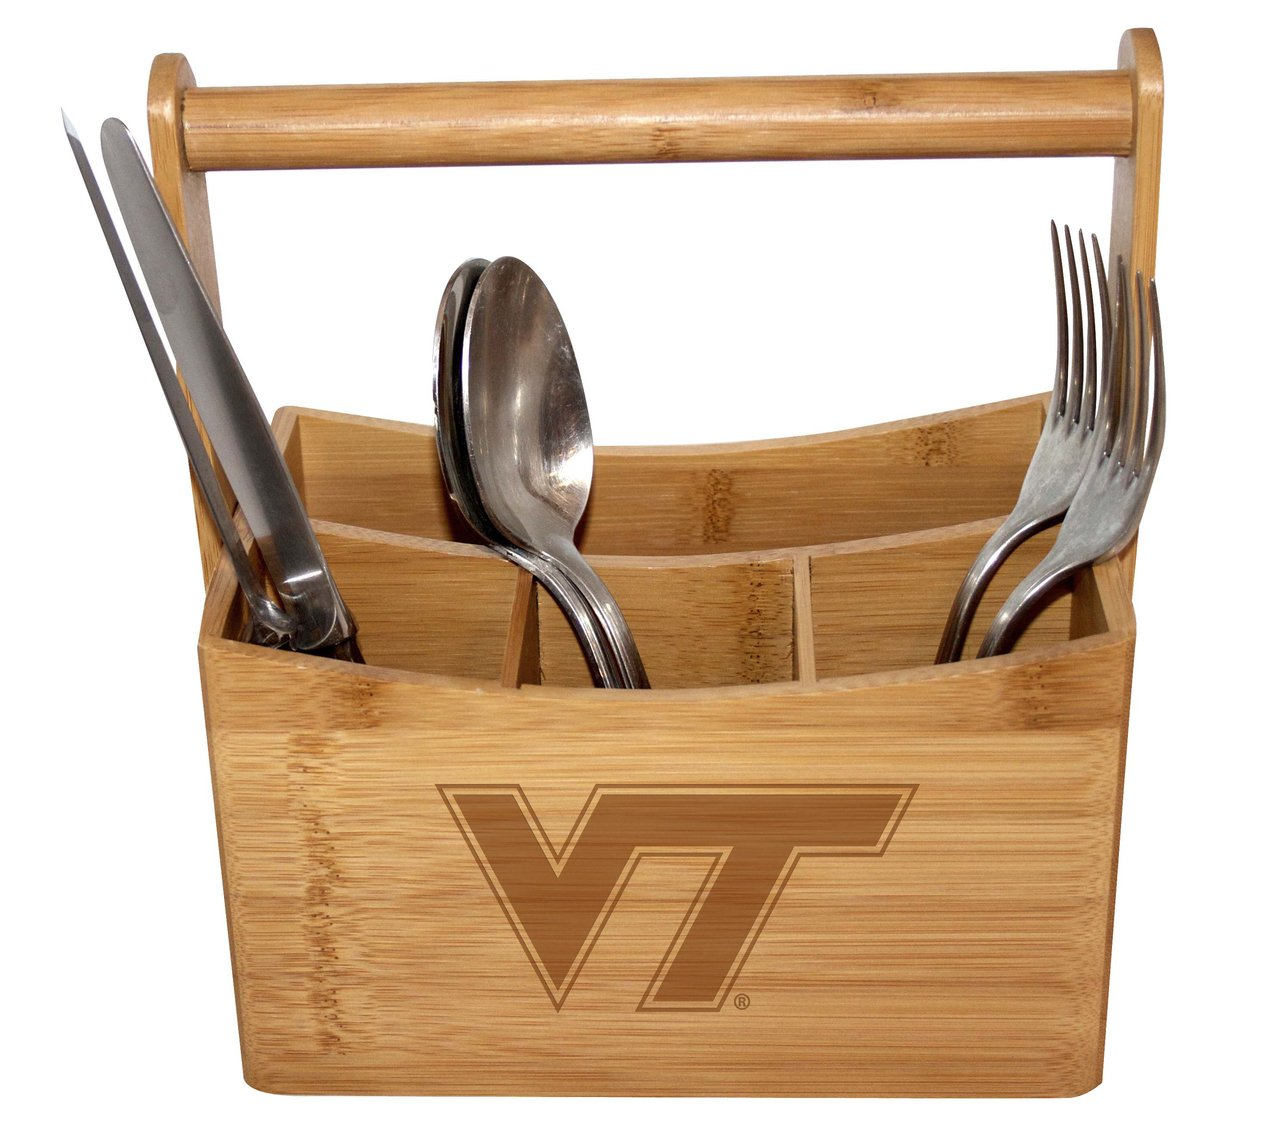 Virginia Tech Bamboo Caddy